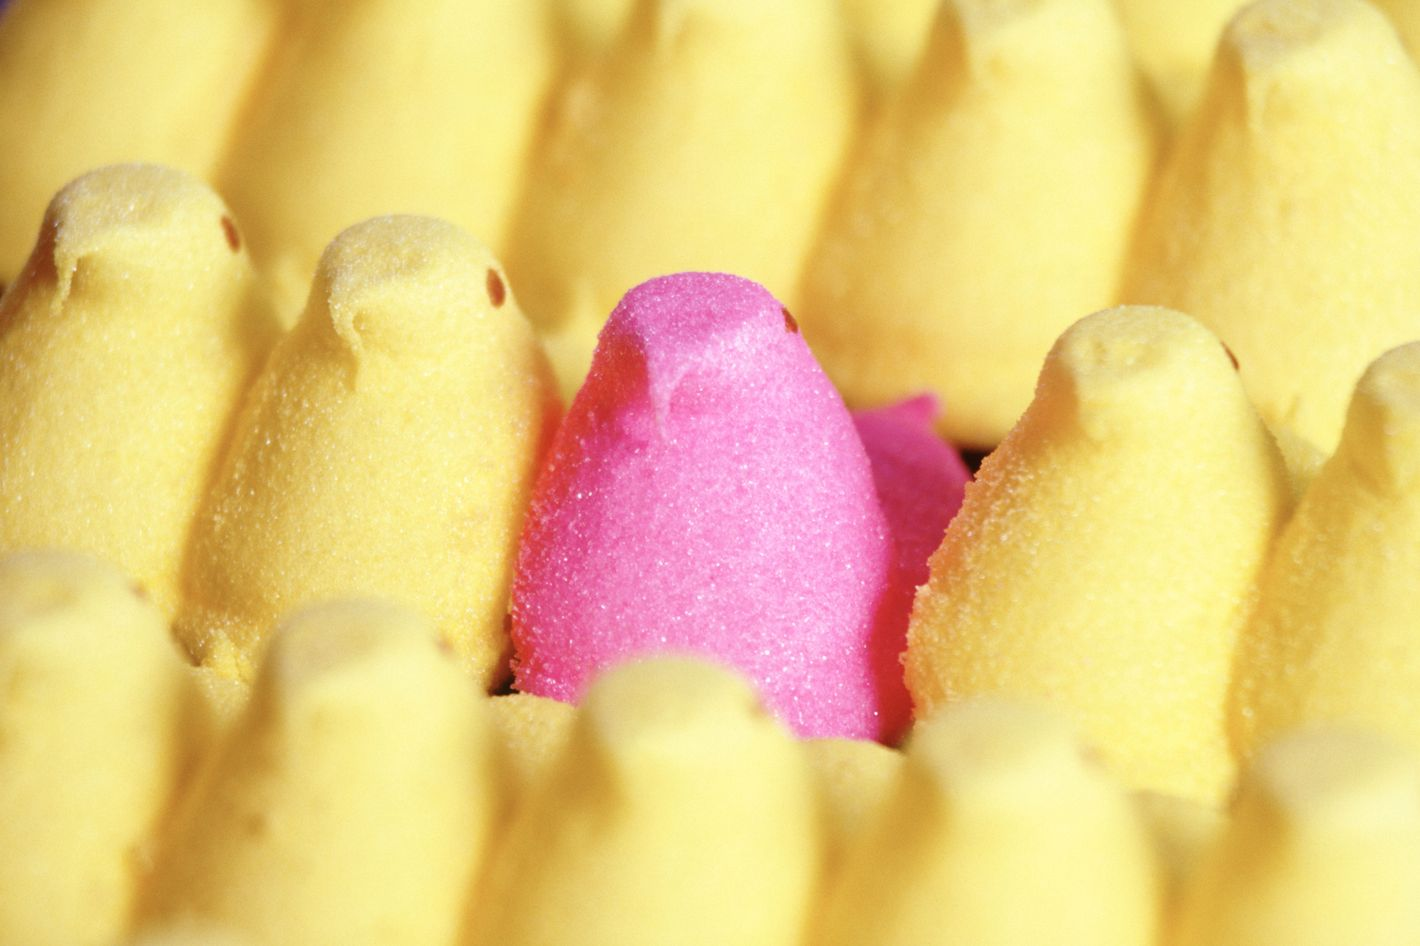 Power to the Peeps.